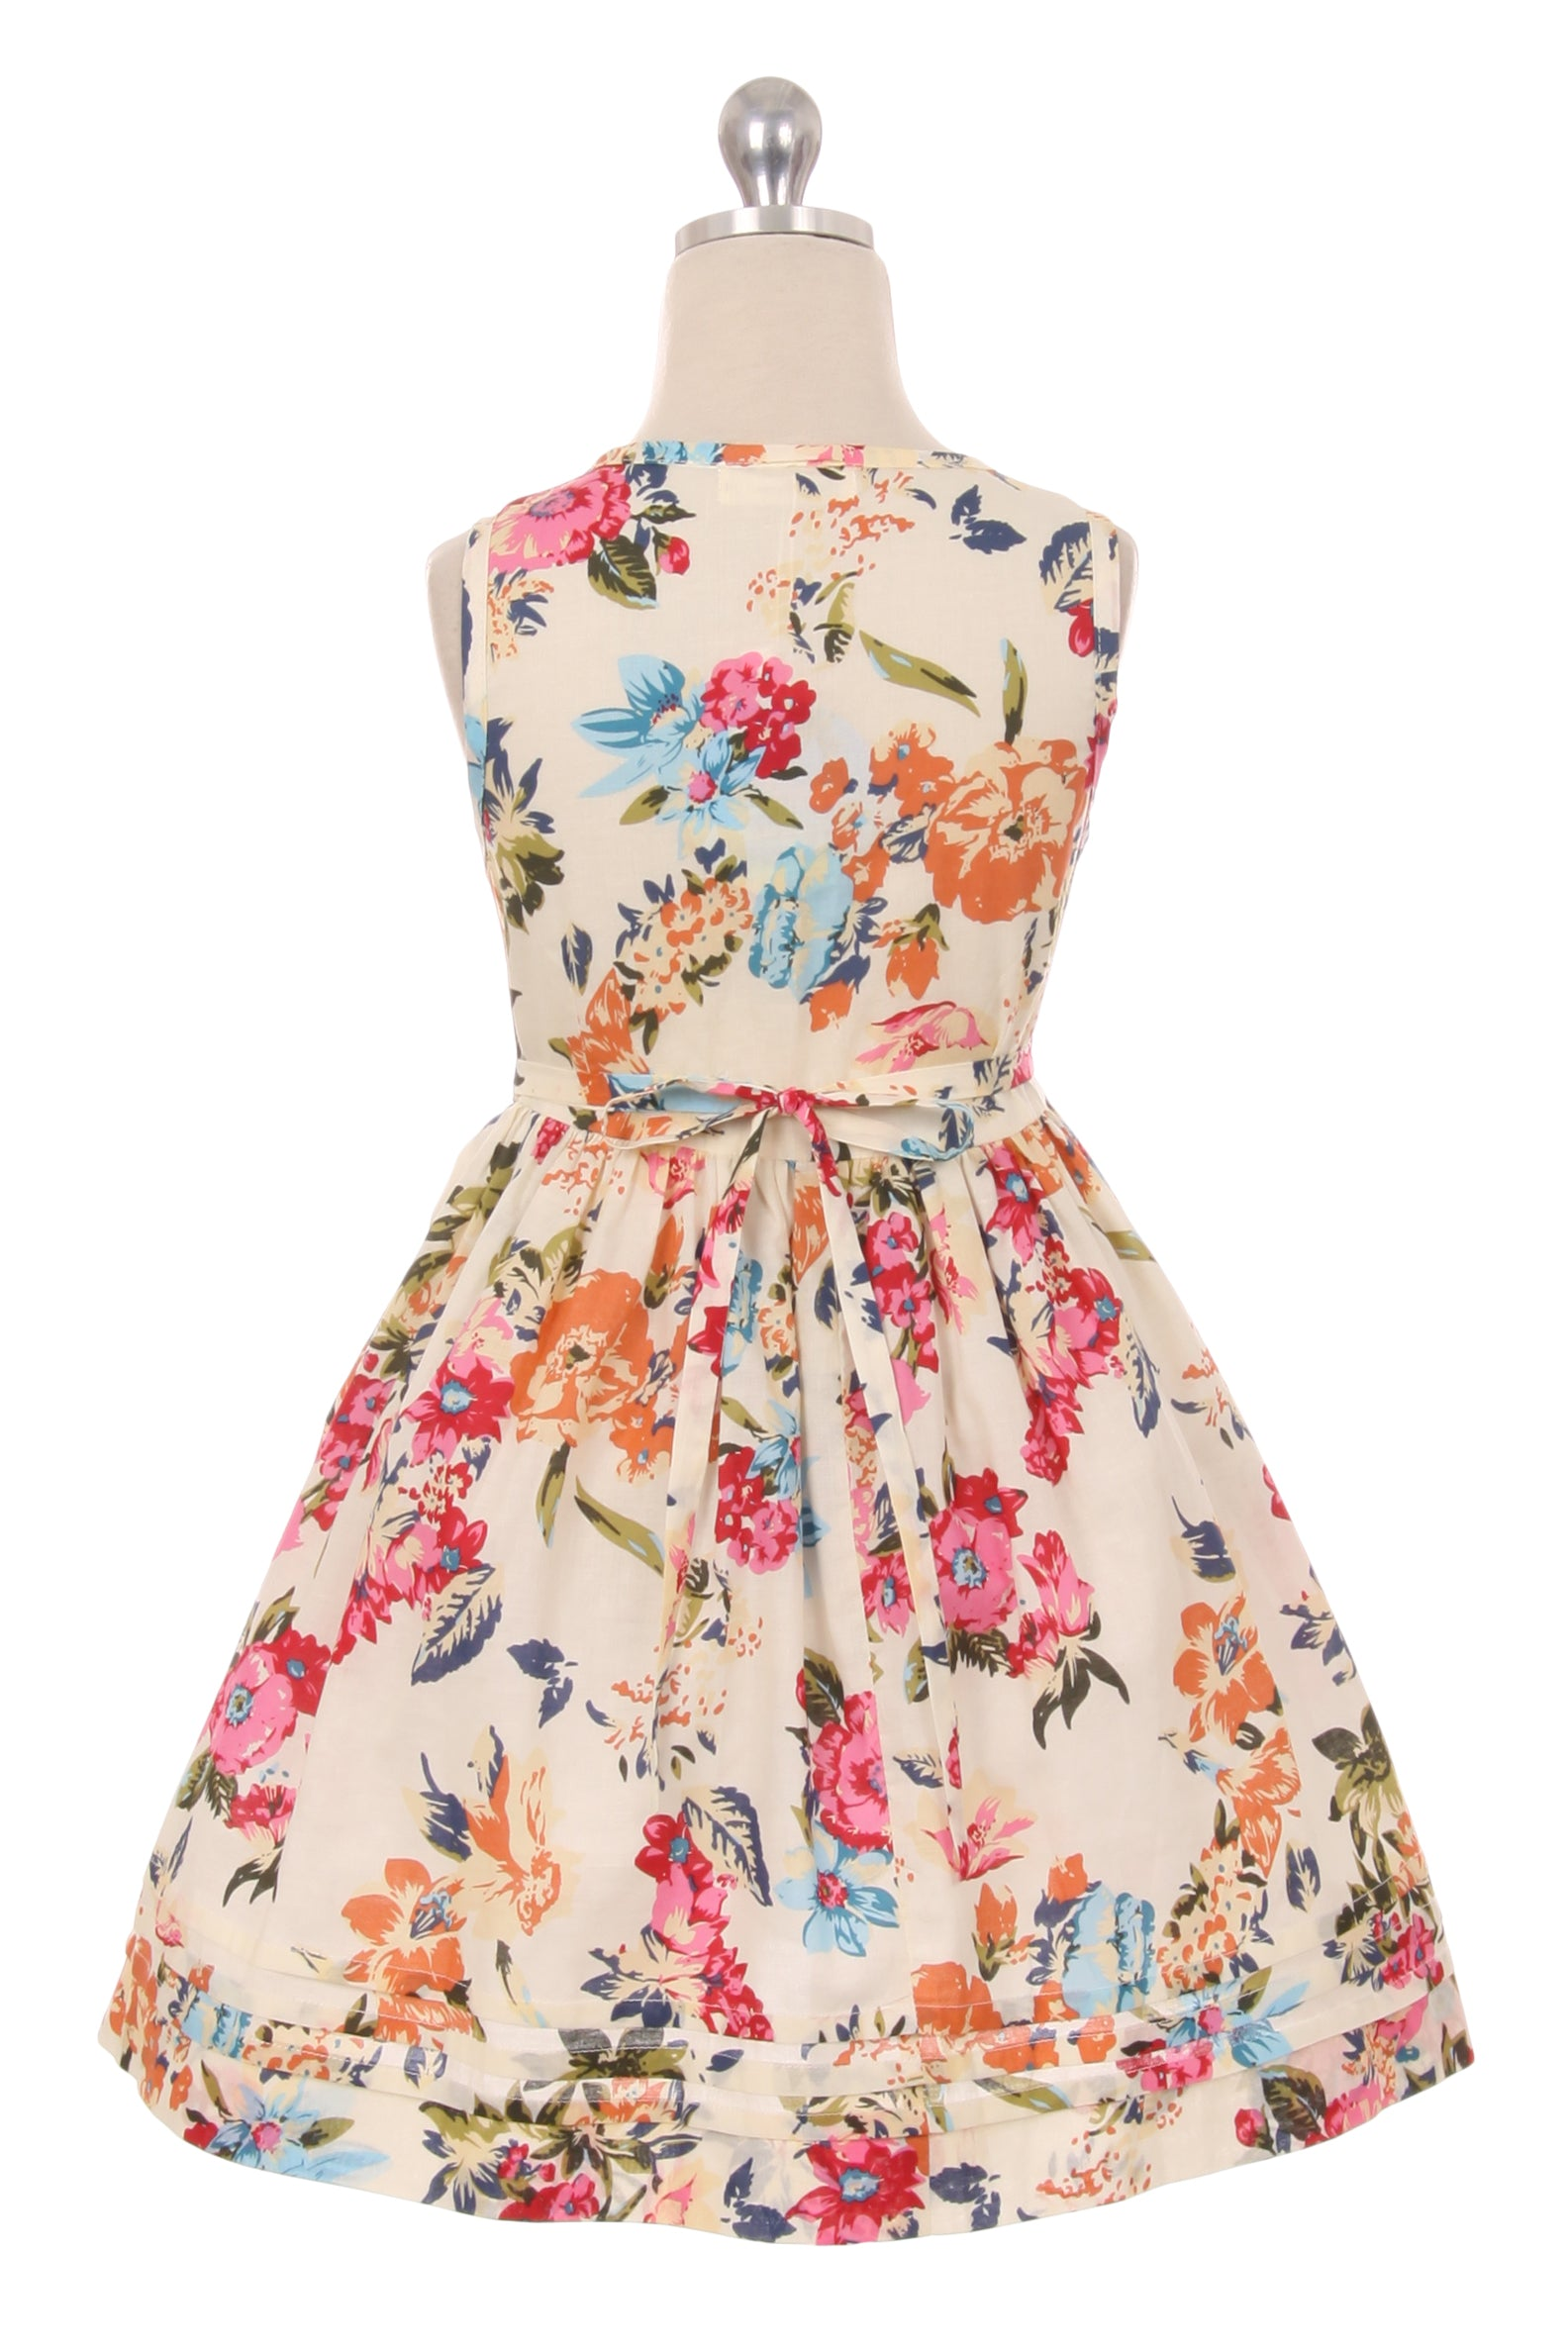 Bold Floral Print Button Cotton Summer Dress